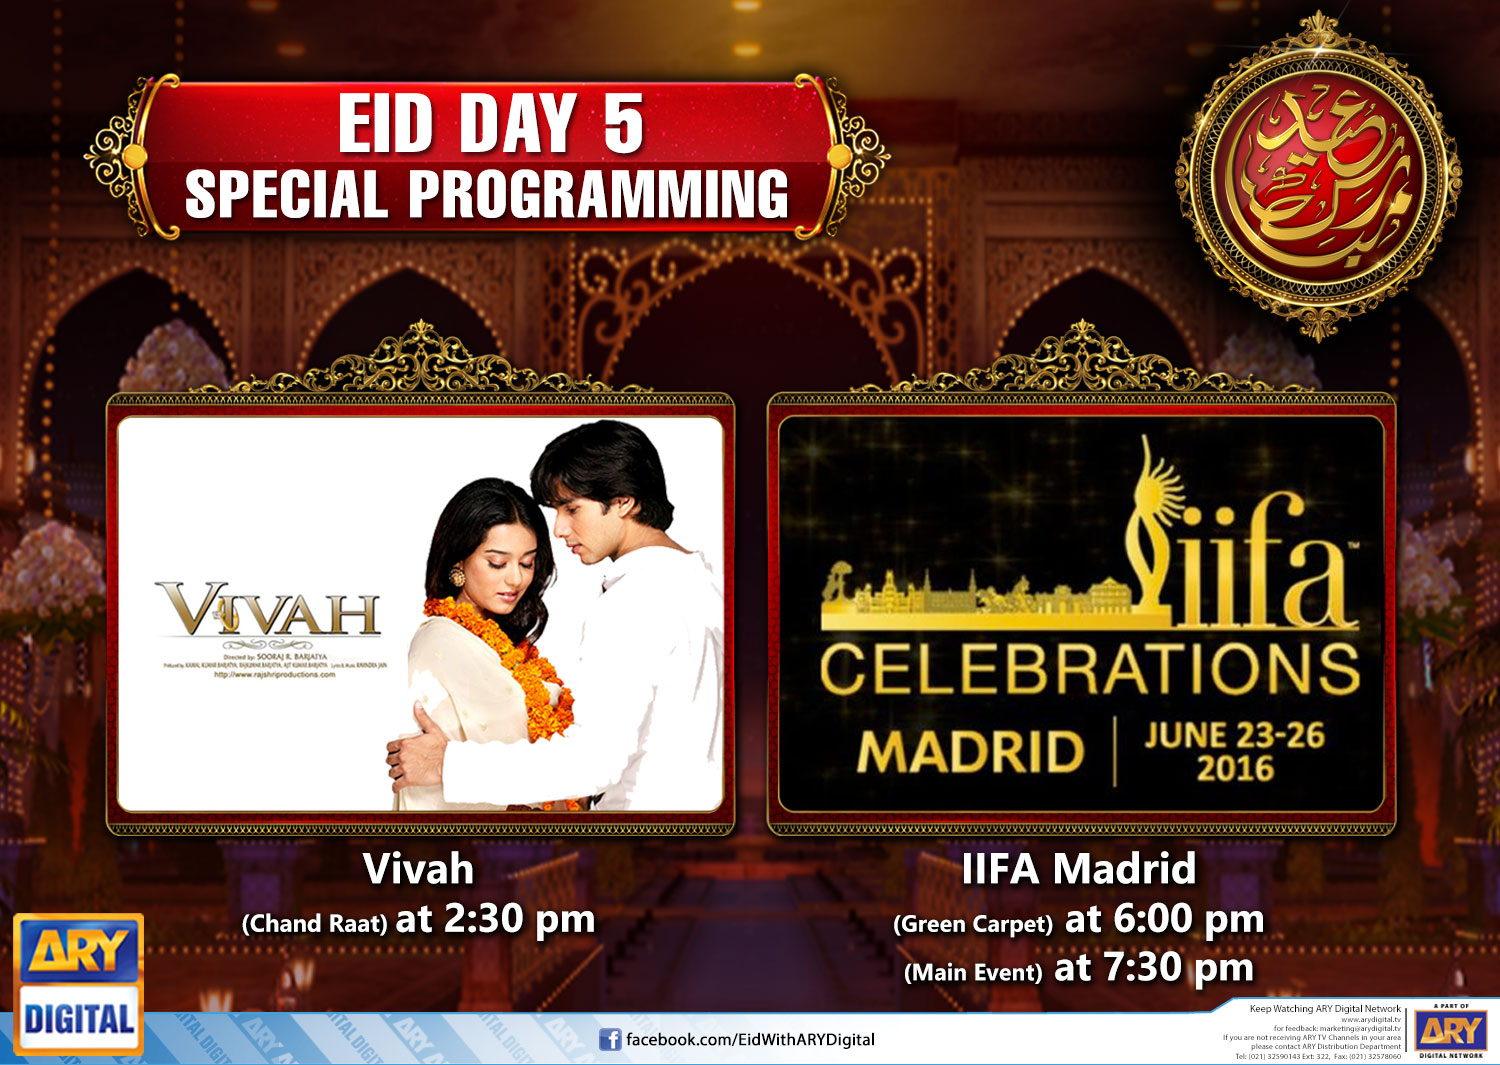 [Press Release] ARY Digital and ARY Zindagi brings exciting programs for Eid 2016 (5)